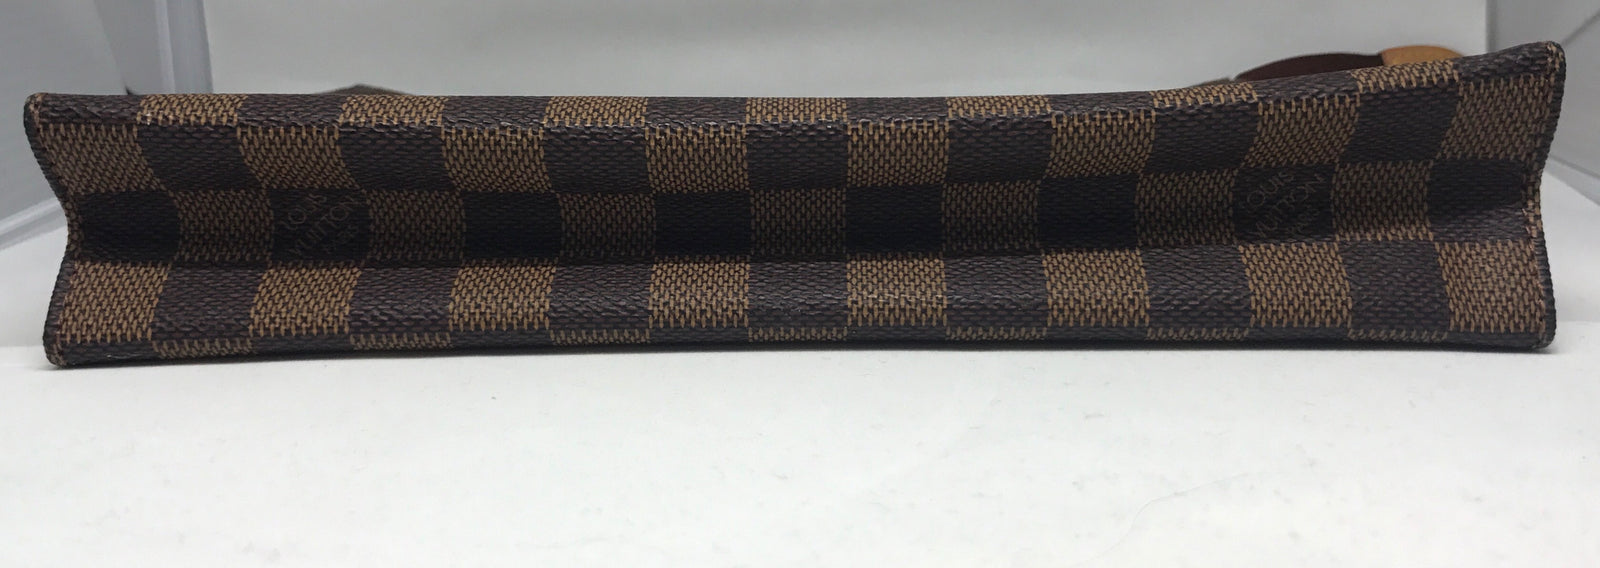 Louis Vuitton Damier Pouch